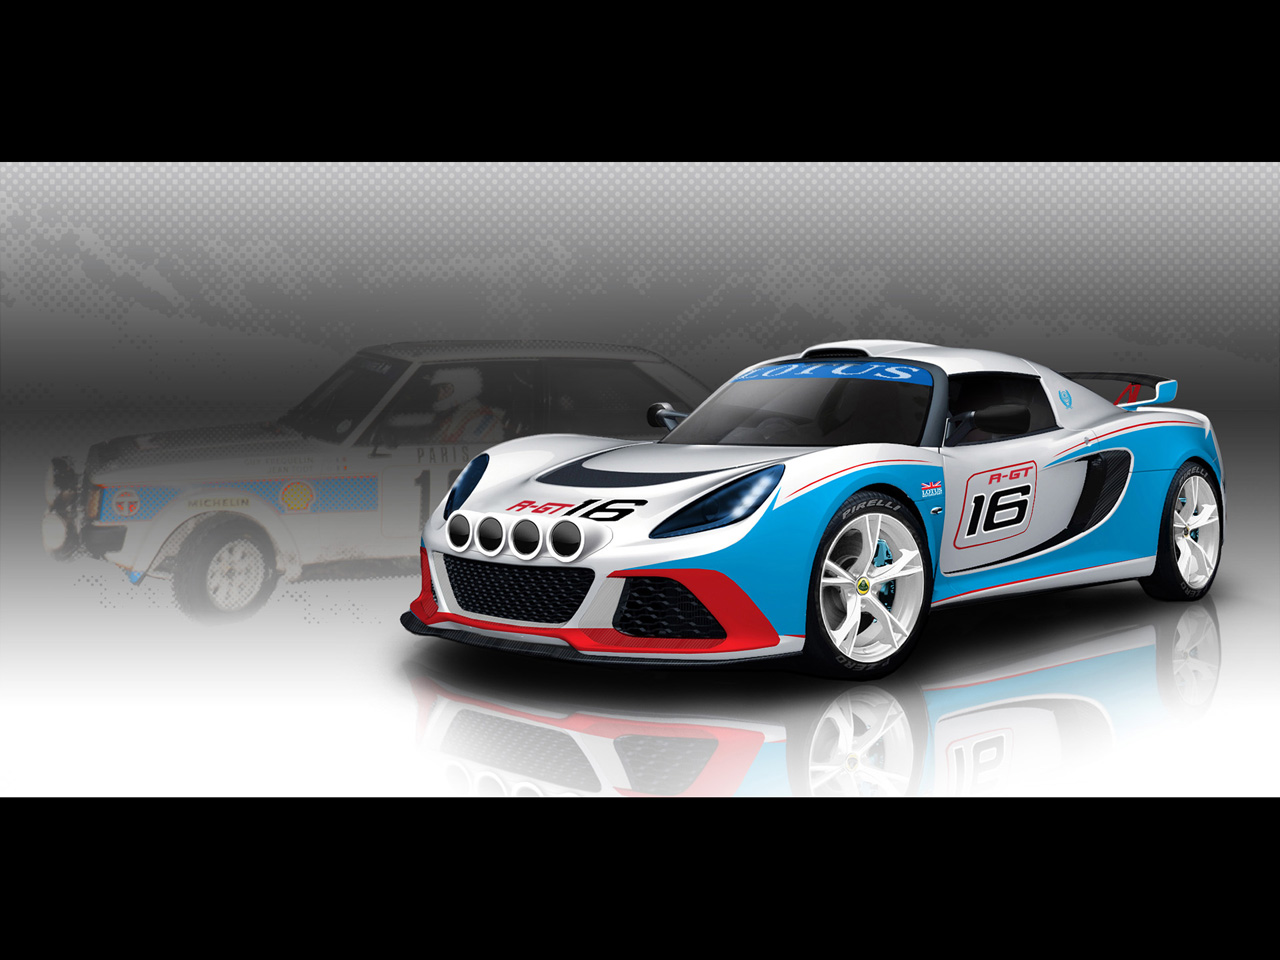 2012 Lotus Exige R-GT Rally Car - Talbot Sunbeam Lotus - 1280x960 ...